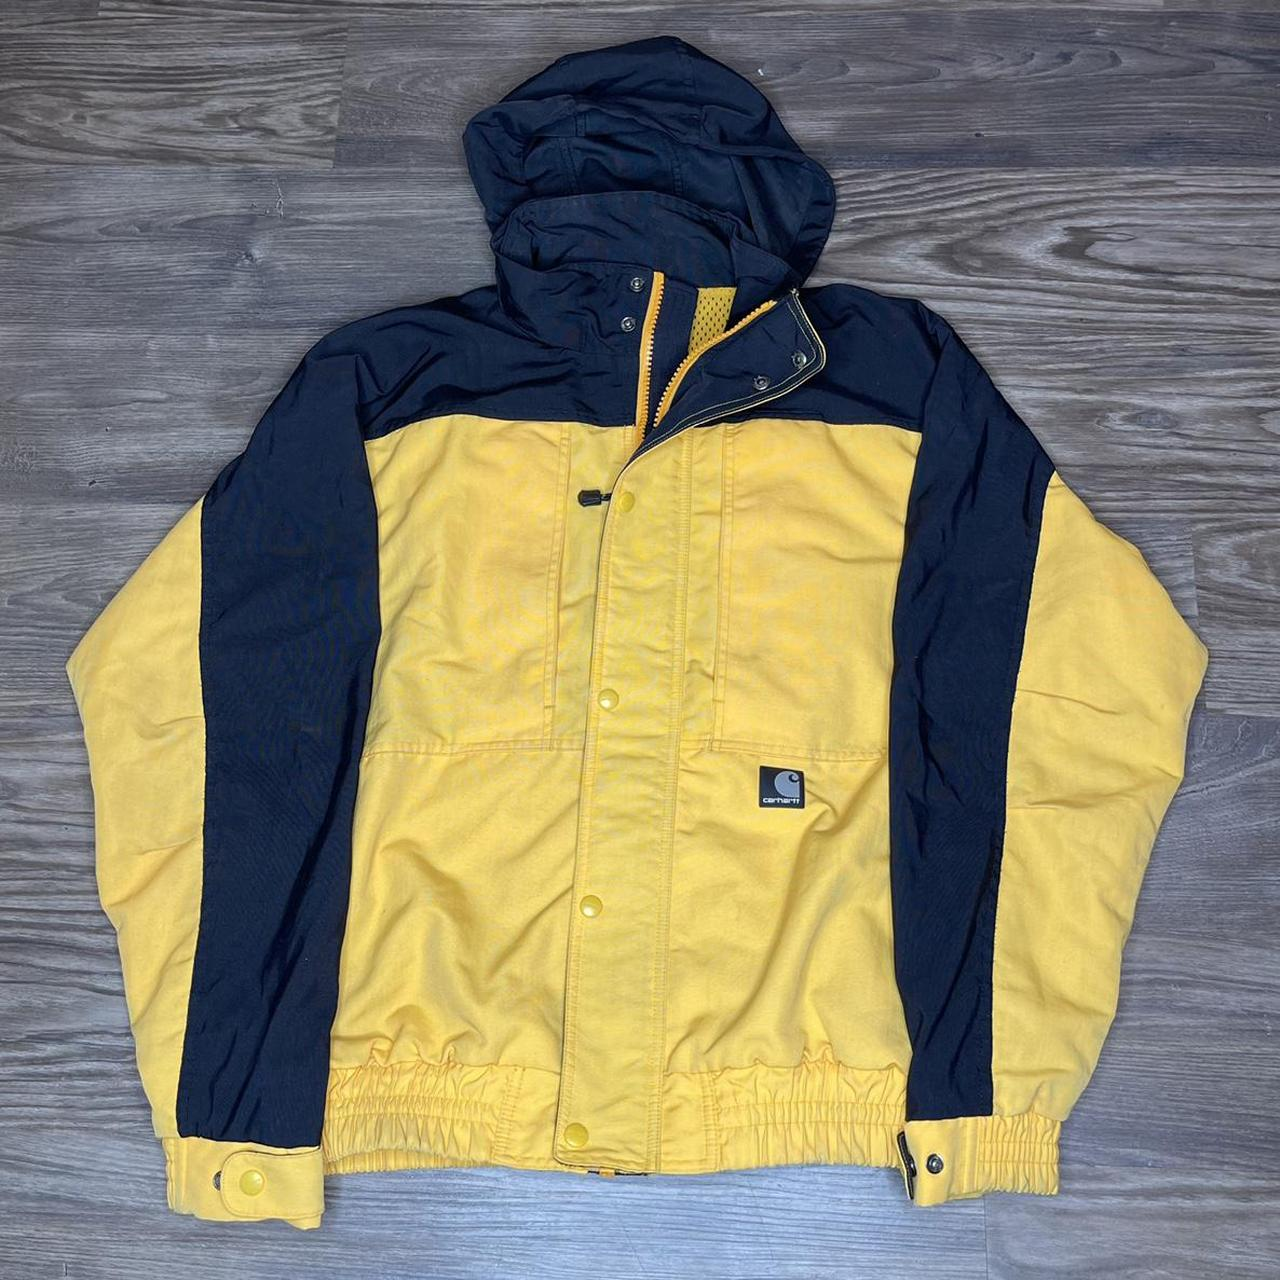 Product Image 1 - Vintage 90s carhartt jacket -good condition